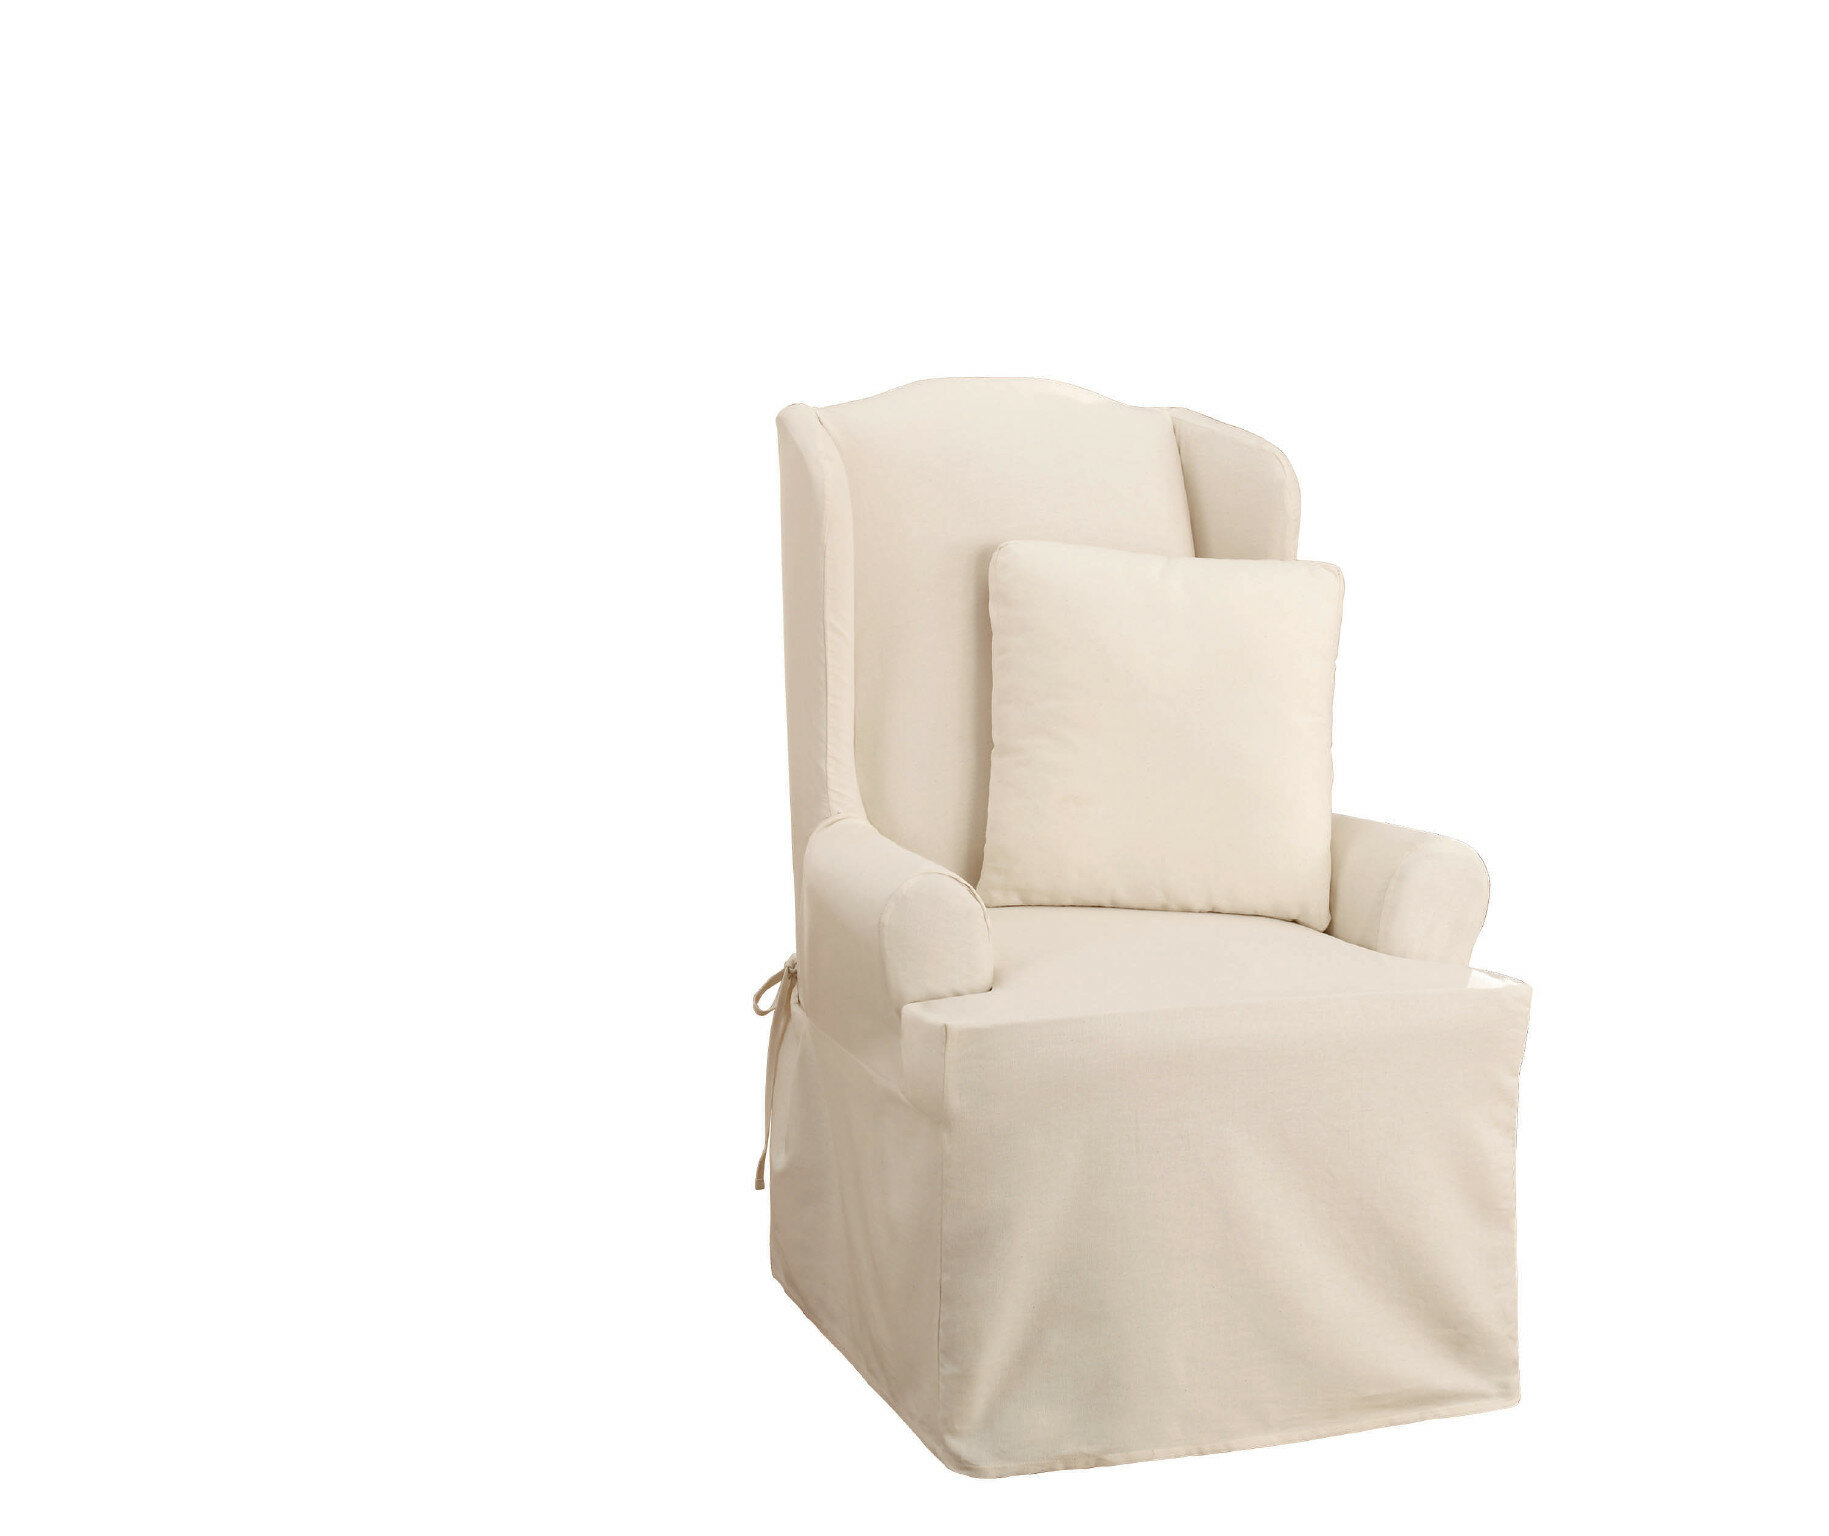 reveal slipcover my a to make covers wingback wing chair how img